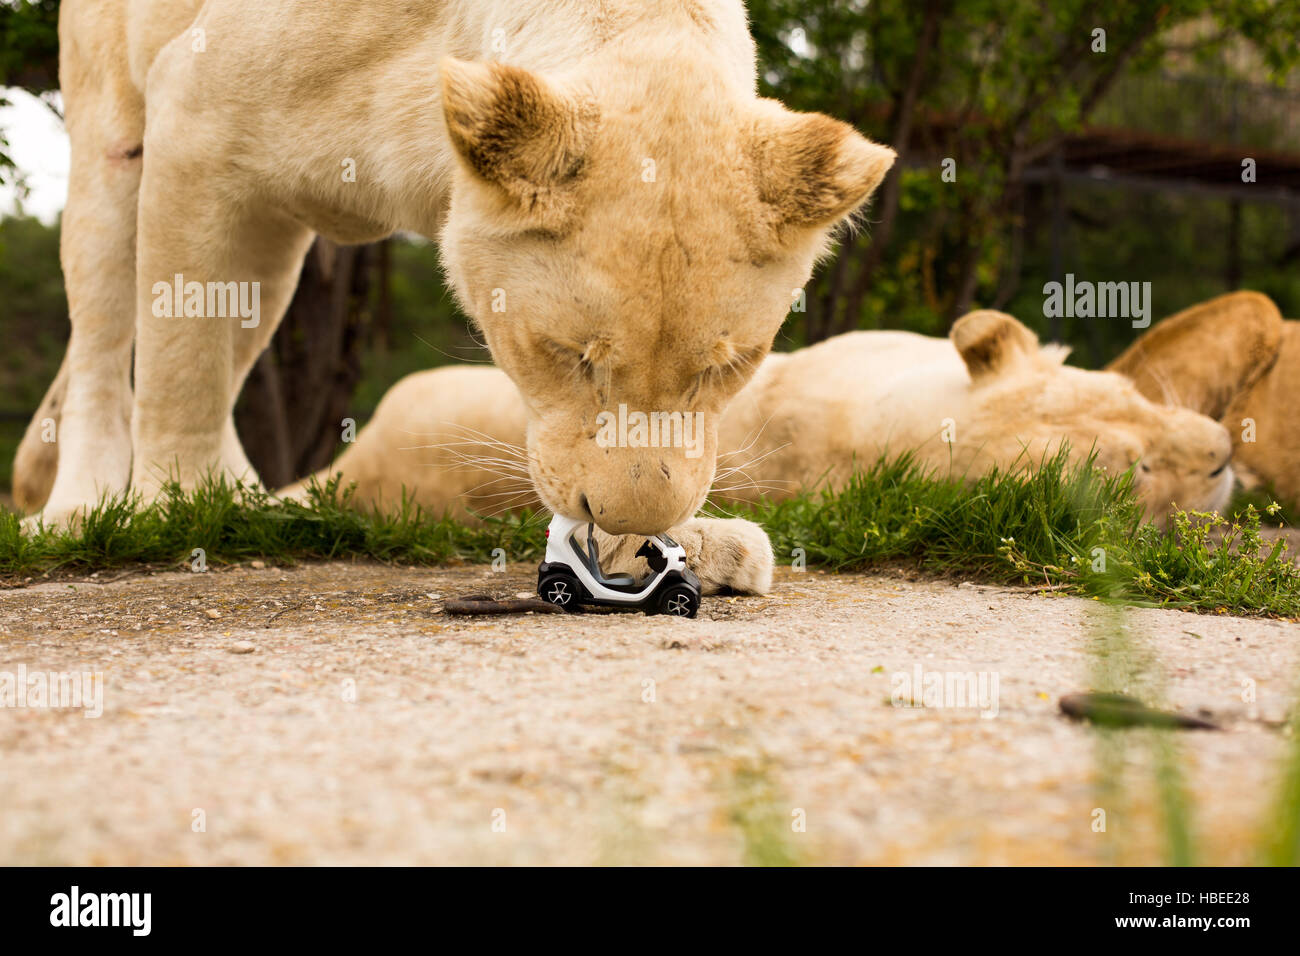 Unique pictures: lion playing with a small model car Renault twizy in safari park Stock Photo